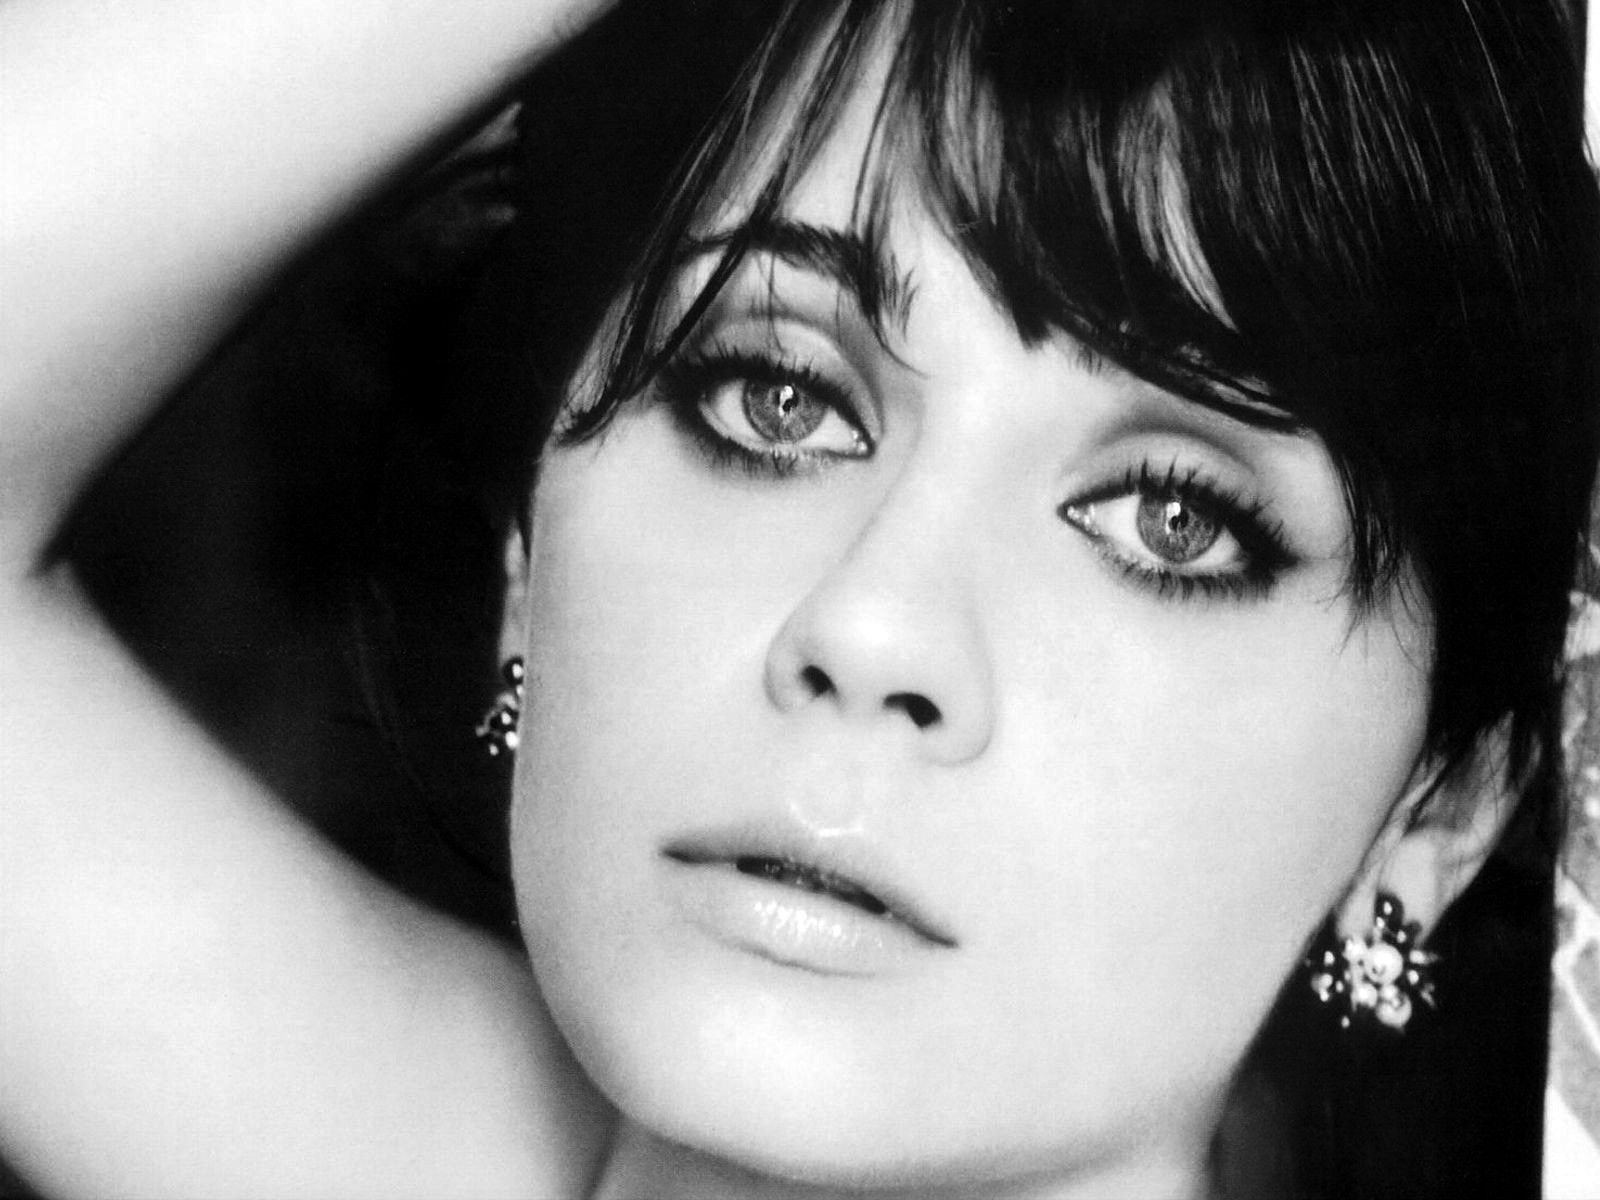 woman Actress zooey deschanel